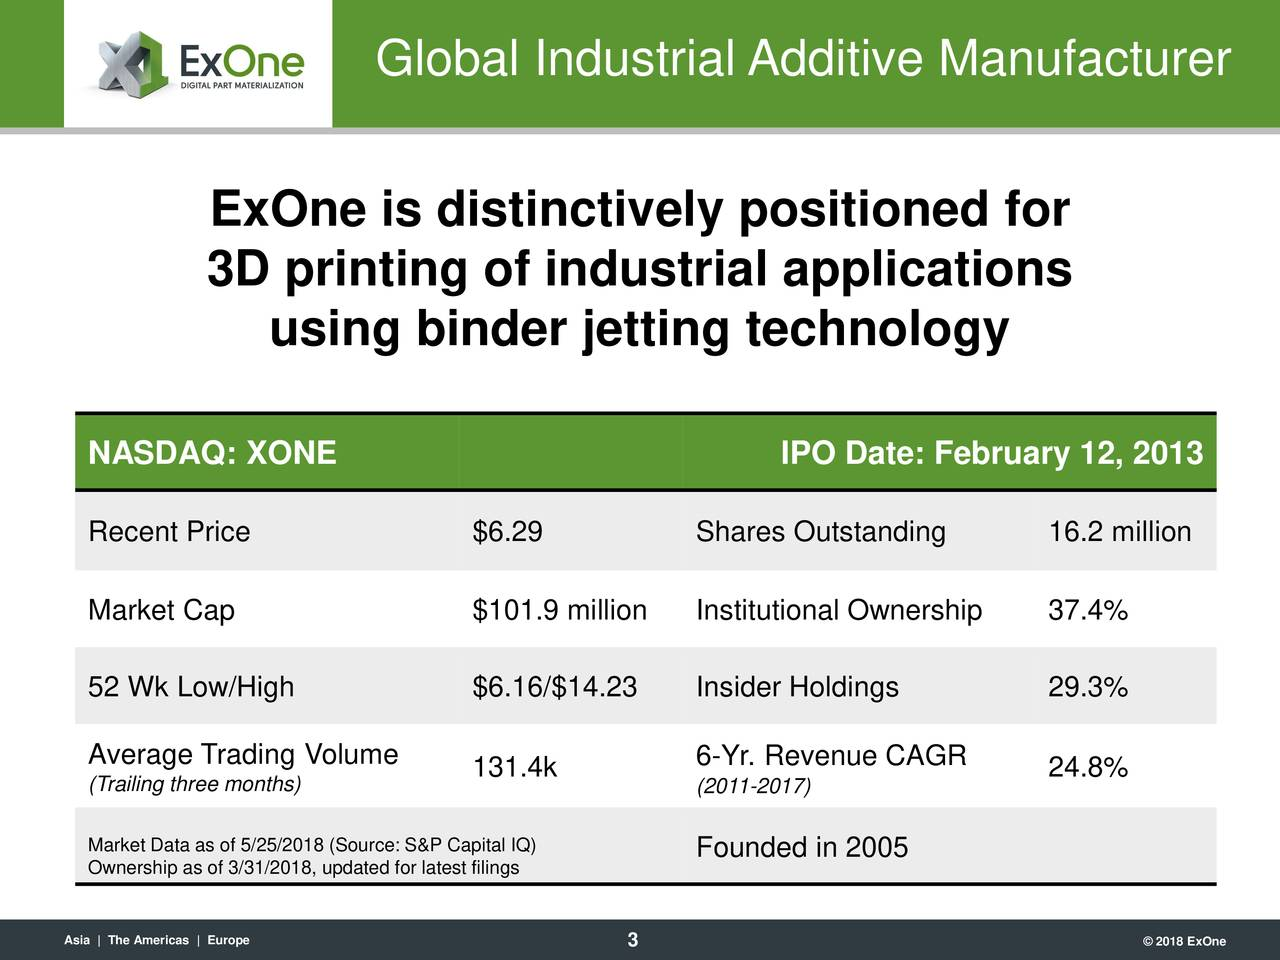 ExOne is distinctively positioned for 3D printing of industrial applications using binder jetting technology NASDAQ: XONE IPO Date: February 12, 2013 Recent Price $6.29 Shares Outstanding 16.2 million Market Cap $101.9 million Institutional Ownership 37.4% 52 Wk Low/High $6.16/$14.23 Insider Holdings 29.3% Average Trading Volume 6-Yr. Revenue CAGR (Trailing three months) 131.4k (2011-2017) 24.8% Market Data as of 5/25/2018 (Source: S&P CapFounded in 2005 Ownership as of 3/31/2018, updated for latest filings Asia | The Americas | Europe © 2018 ExOne